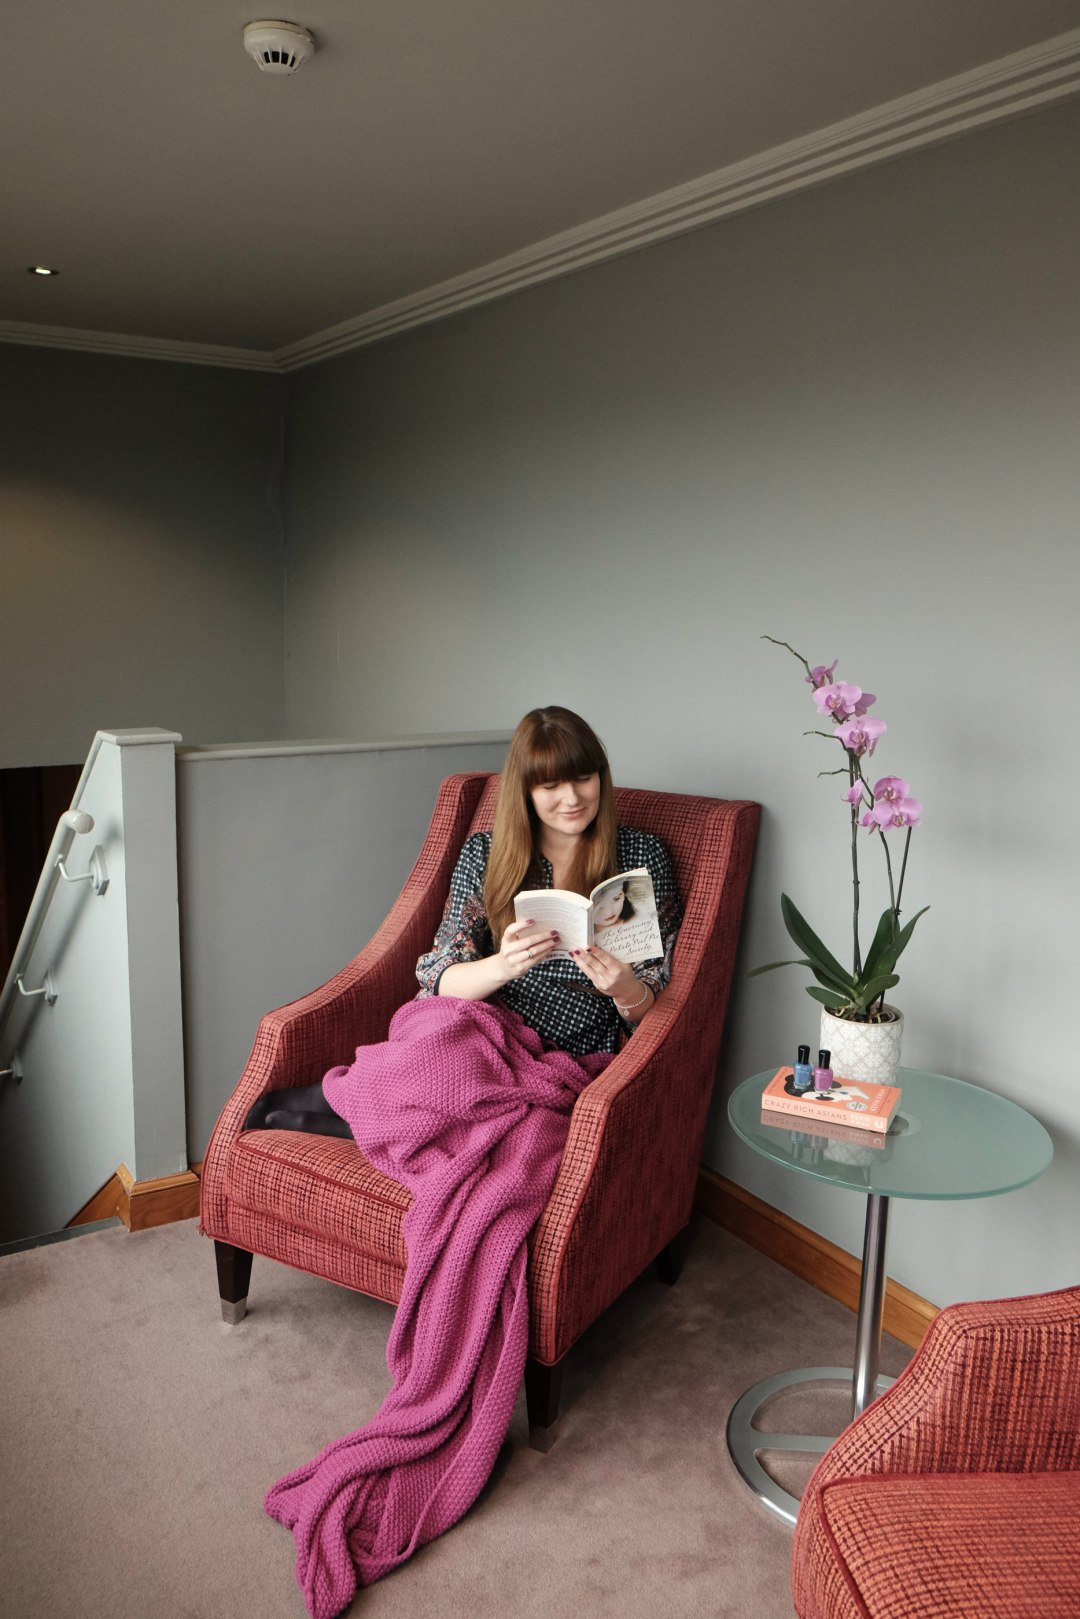 Another image of me on the armchair with the blanket draped over me!  There is a stack of books for my spring reading list.